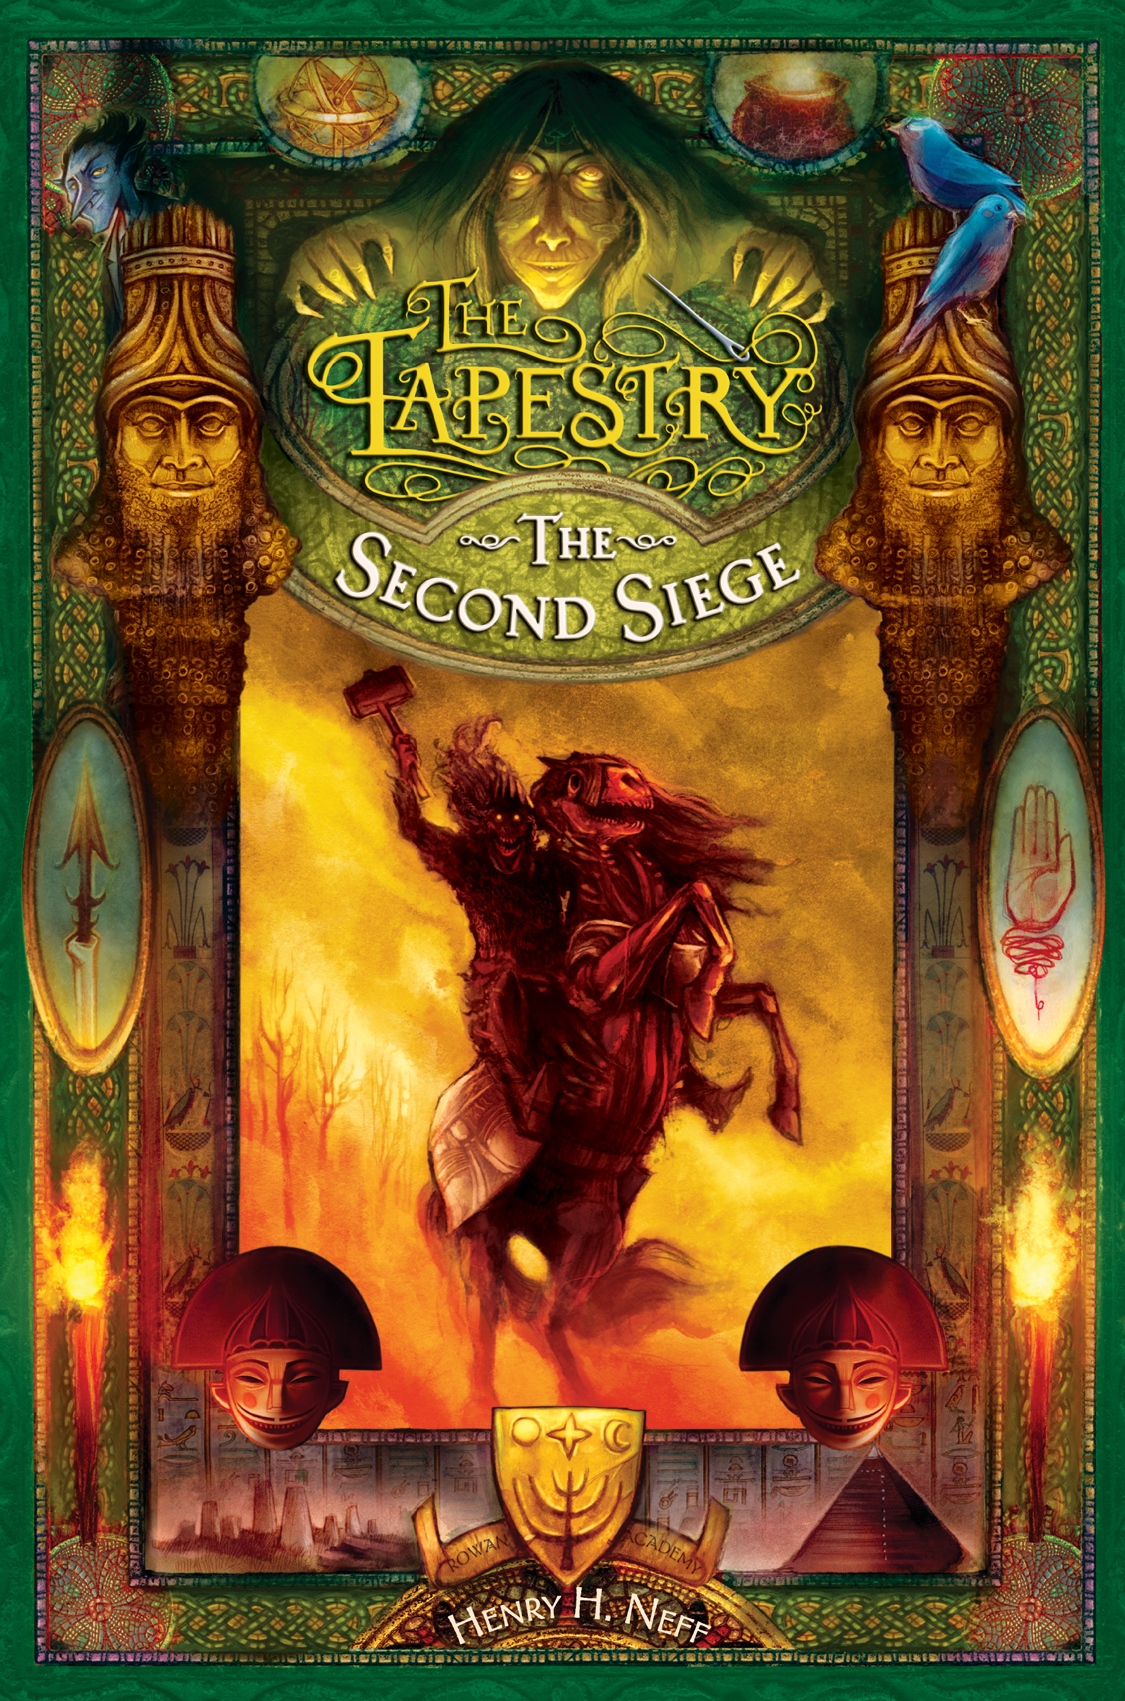 delightful the tapestry #2: The Second Siege is the second novel in The Tapestry series, written and  illustrated by Henry H. Neff. It was published in 2010 by Random House.